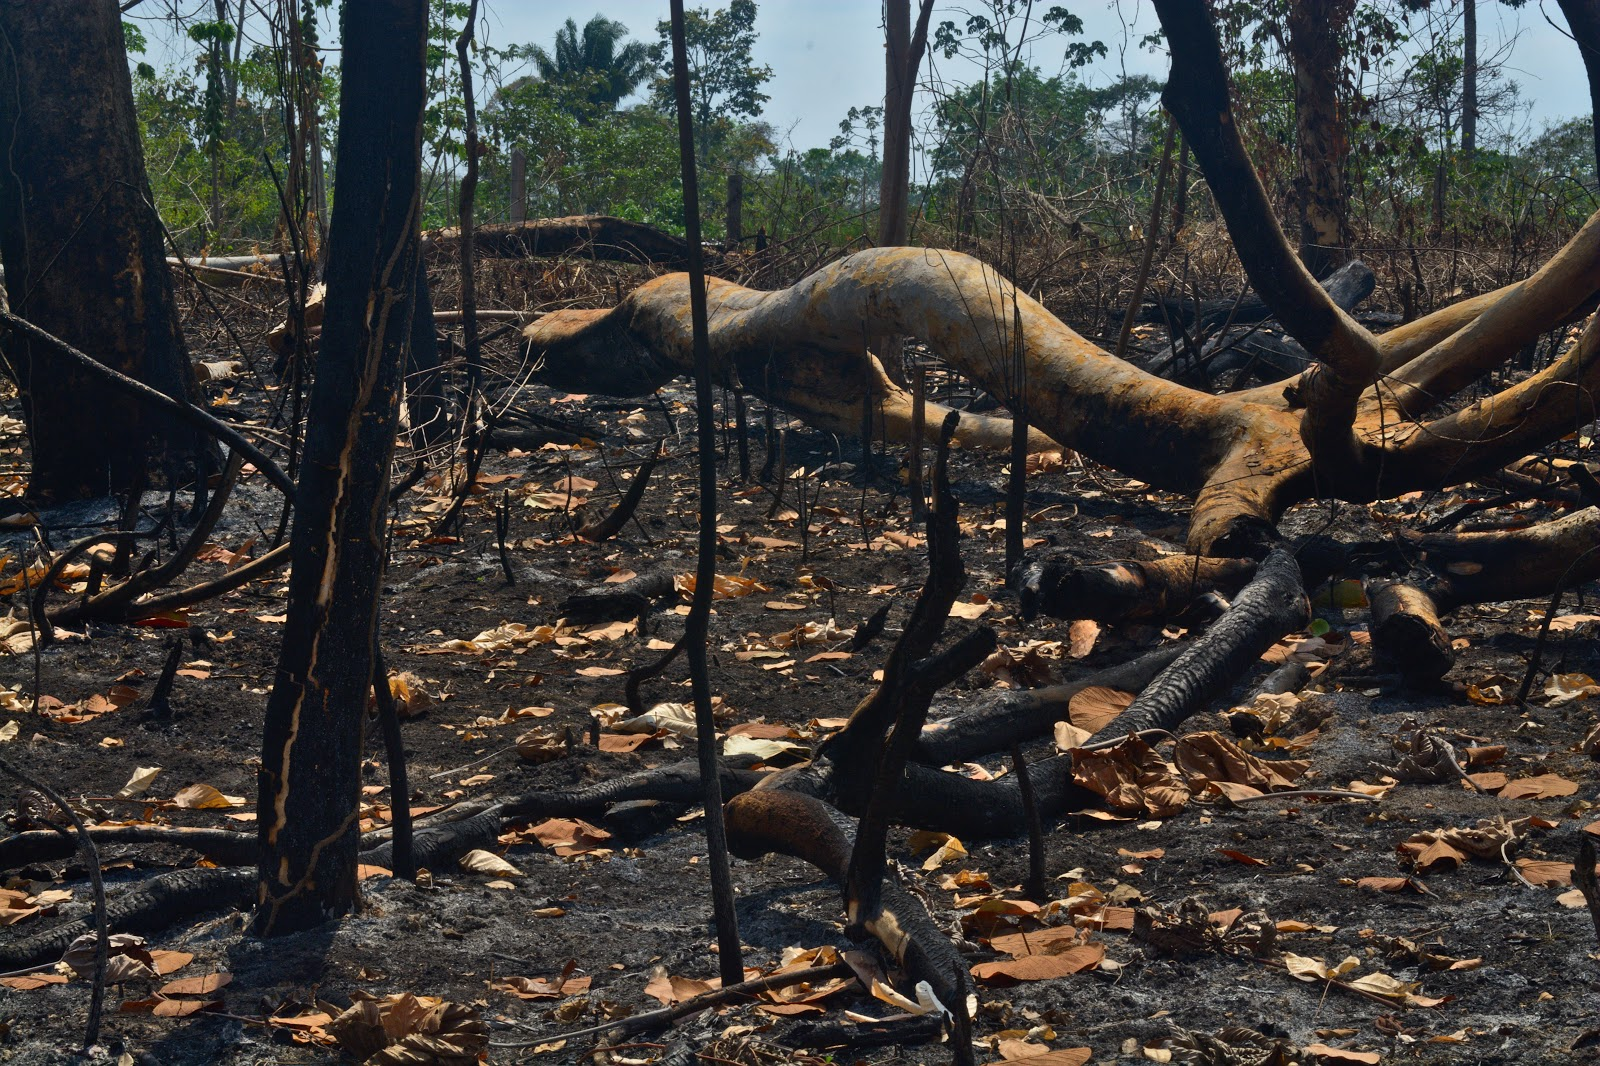 The win-win situation hidden behind the Amazonia fires